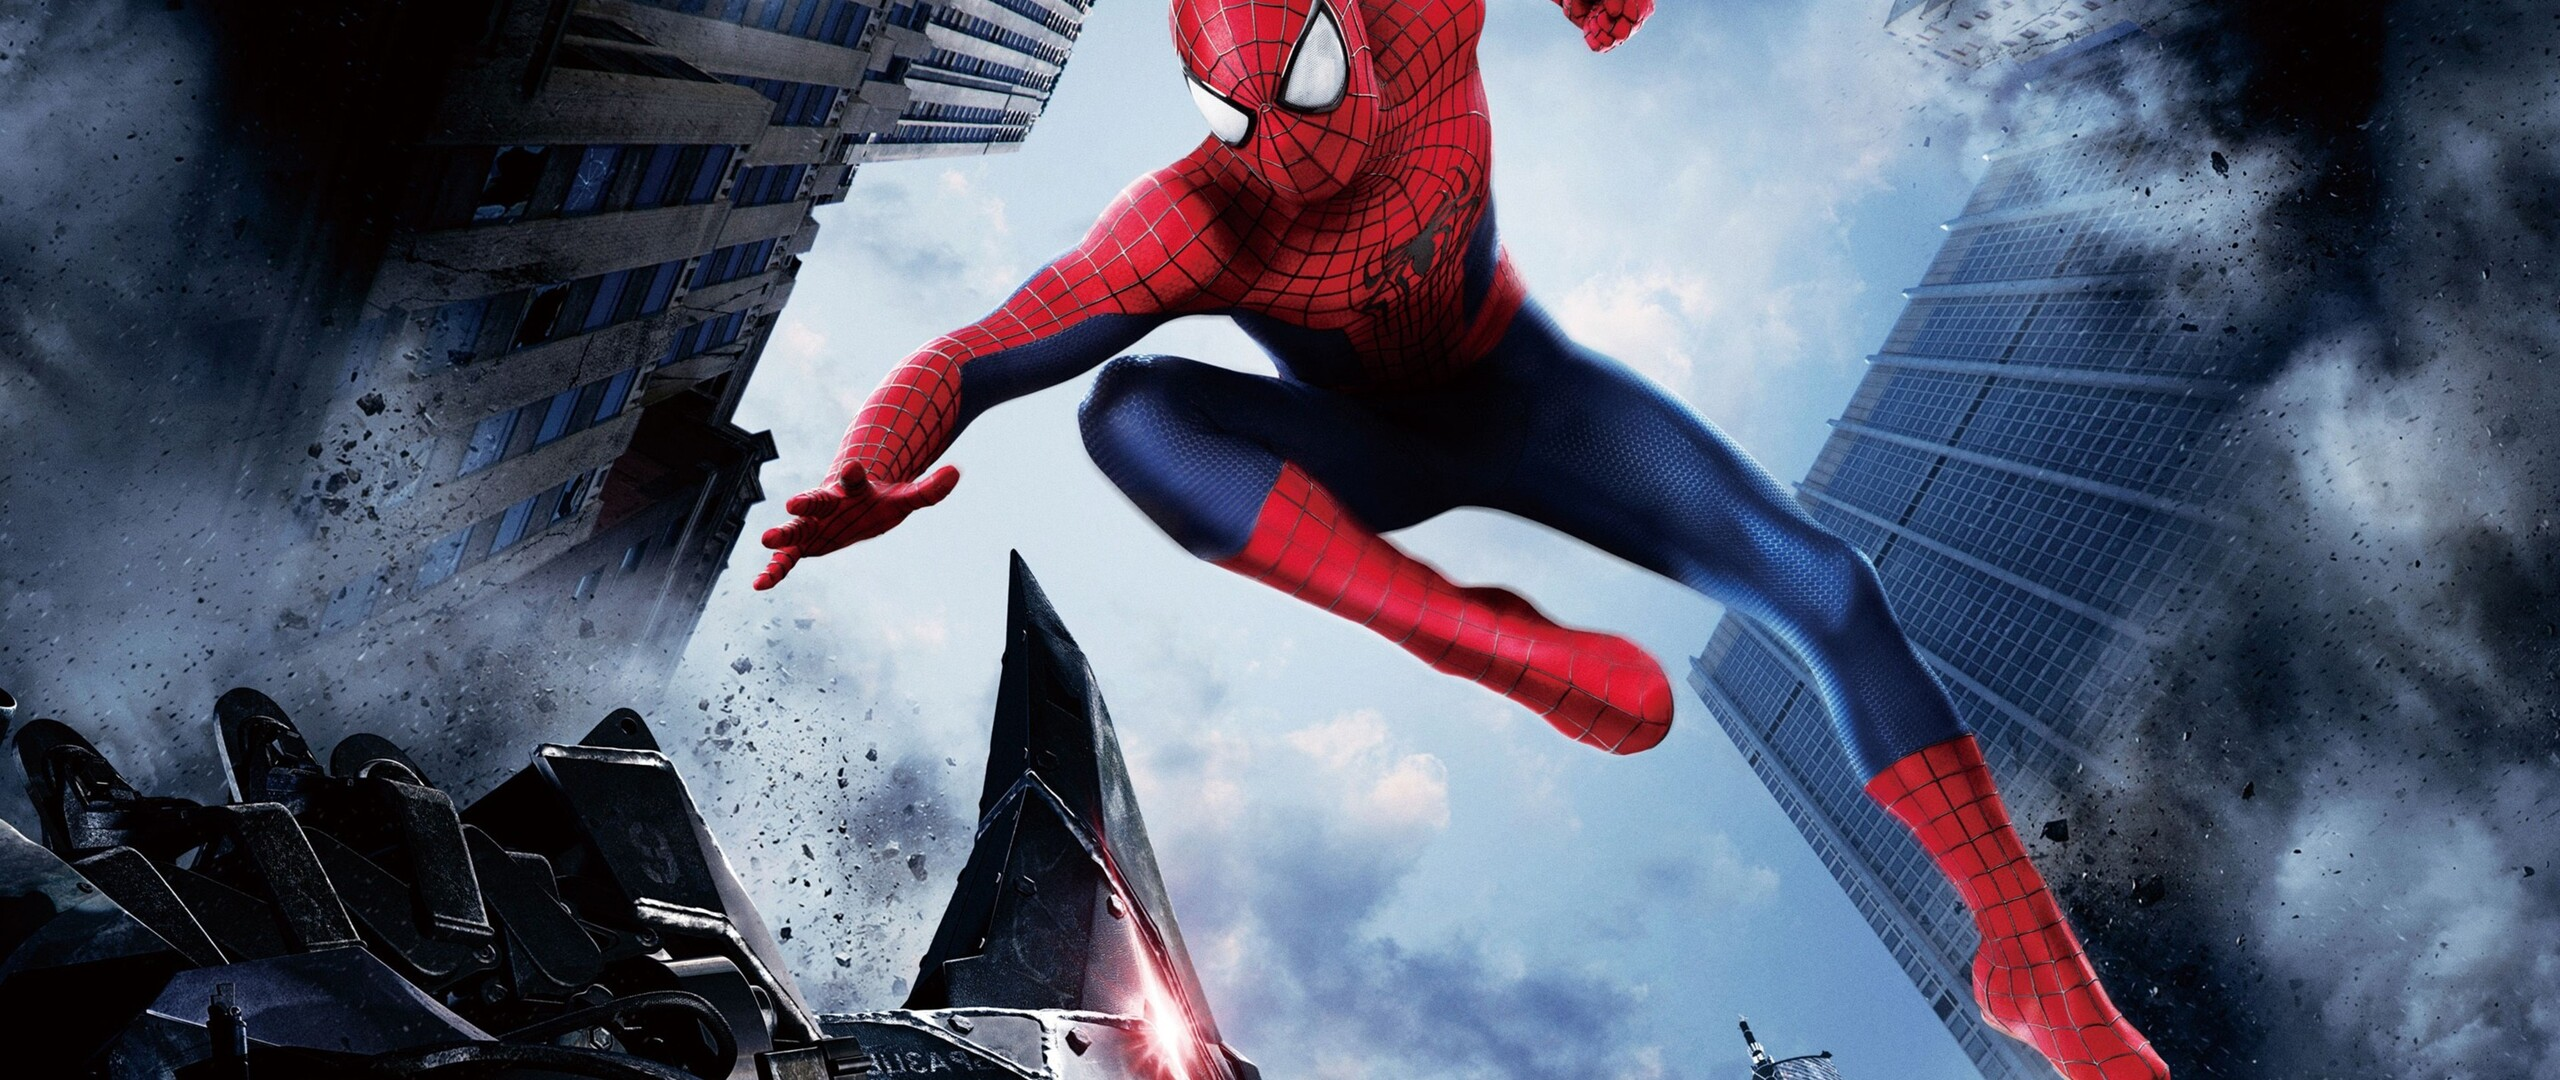 Download 2017 Spiderman Homecoming HD 4k Wallpapers In 2560x1080 ...